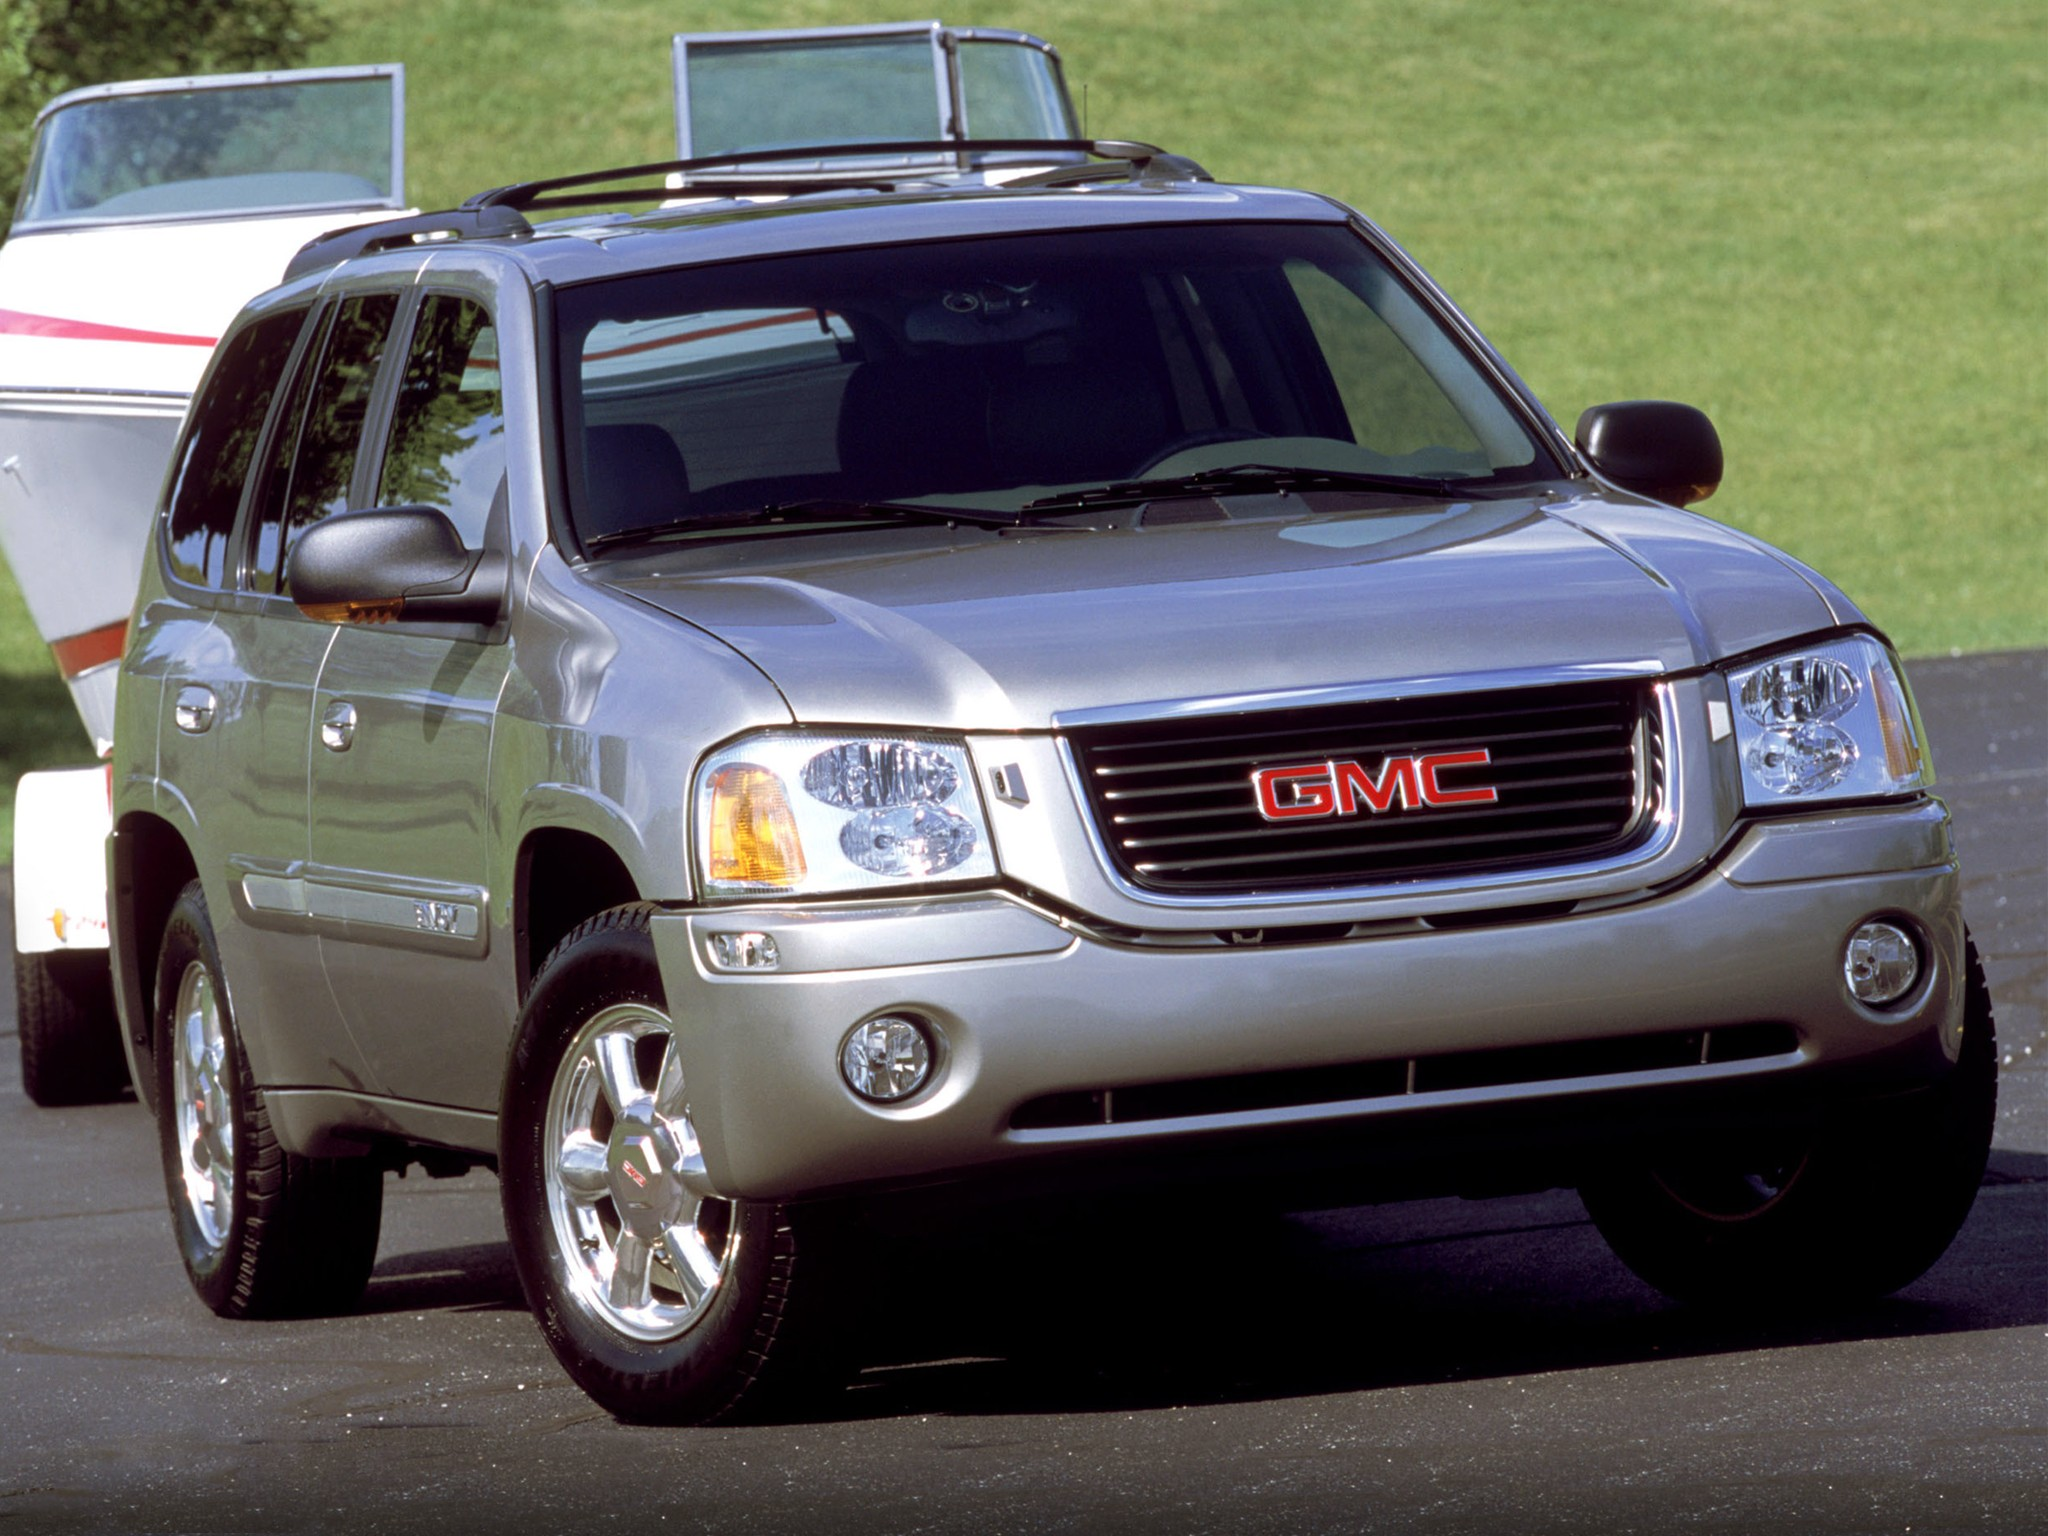 Gmc Envoy on 2009 Dodge Durango